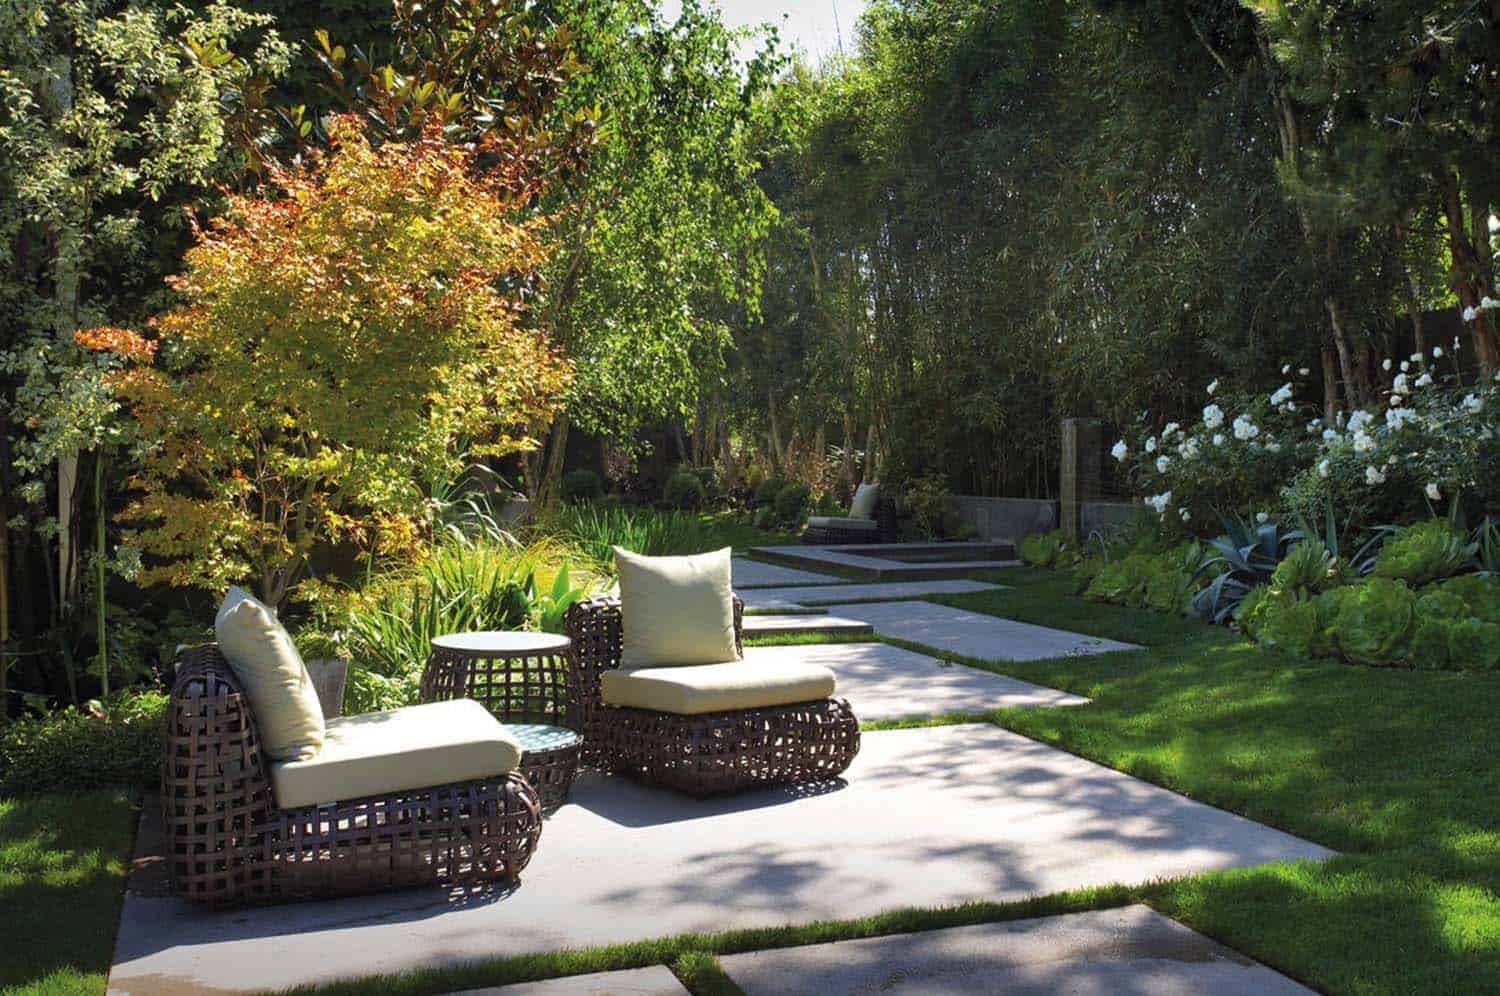 33 Fabulous Ideas For Creating Beautiful Outdoor Living Spaces on Beautiful Outdoor Living Spaces id=95063